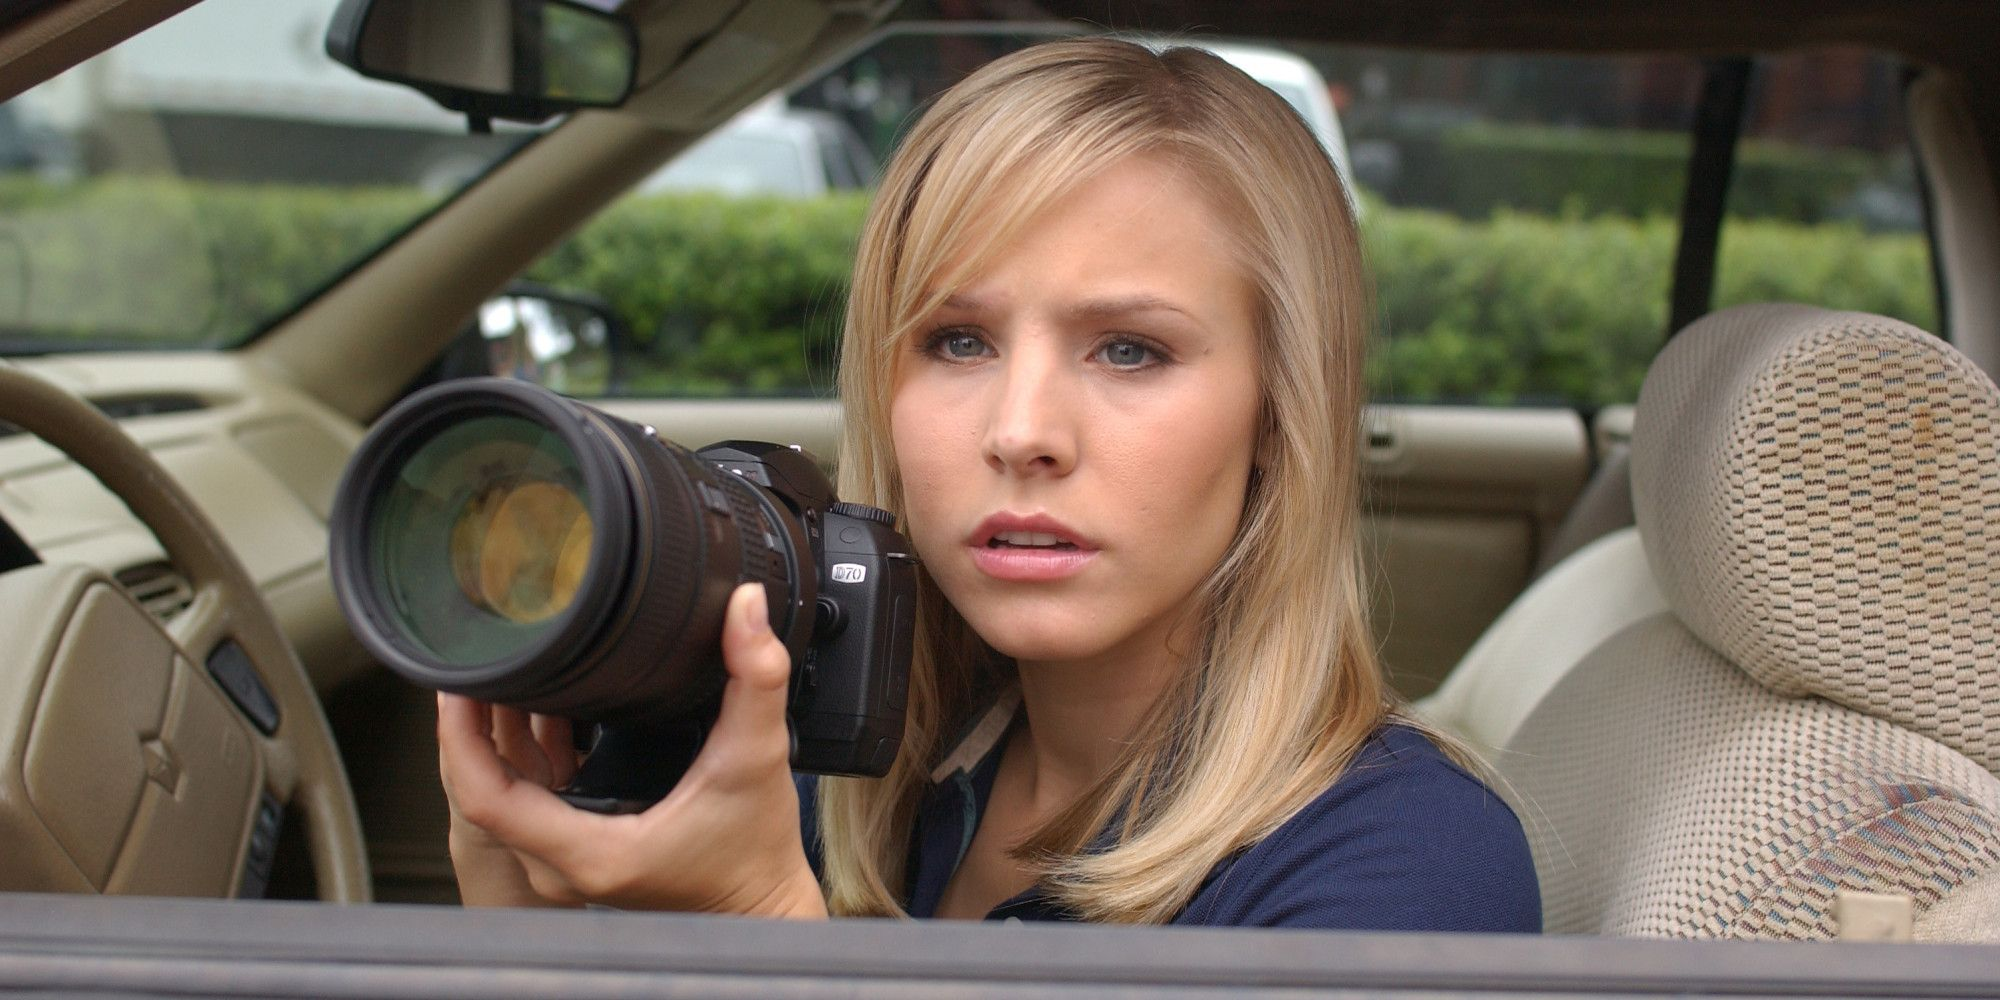 'Veronica Mars' at Hulu: 8-Episode Limited Eyed Starring Kristen Bell